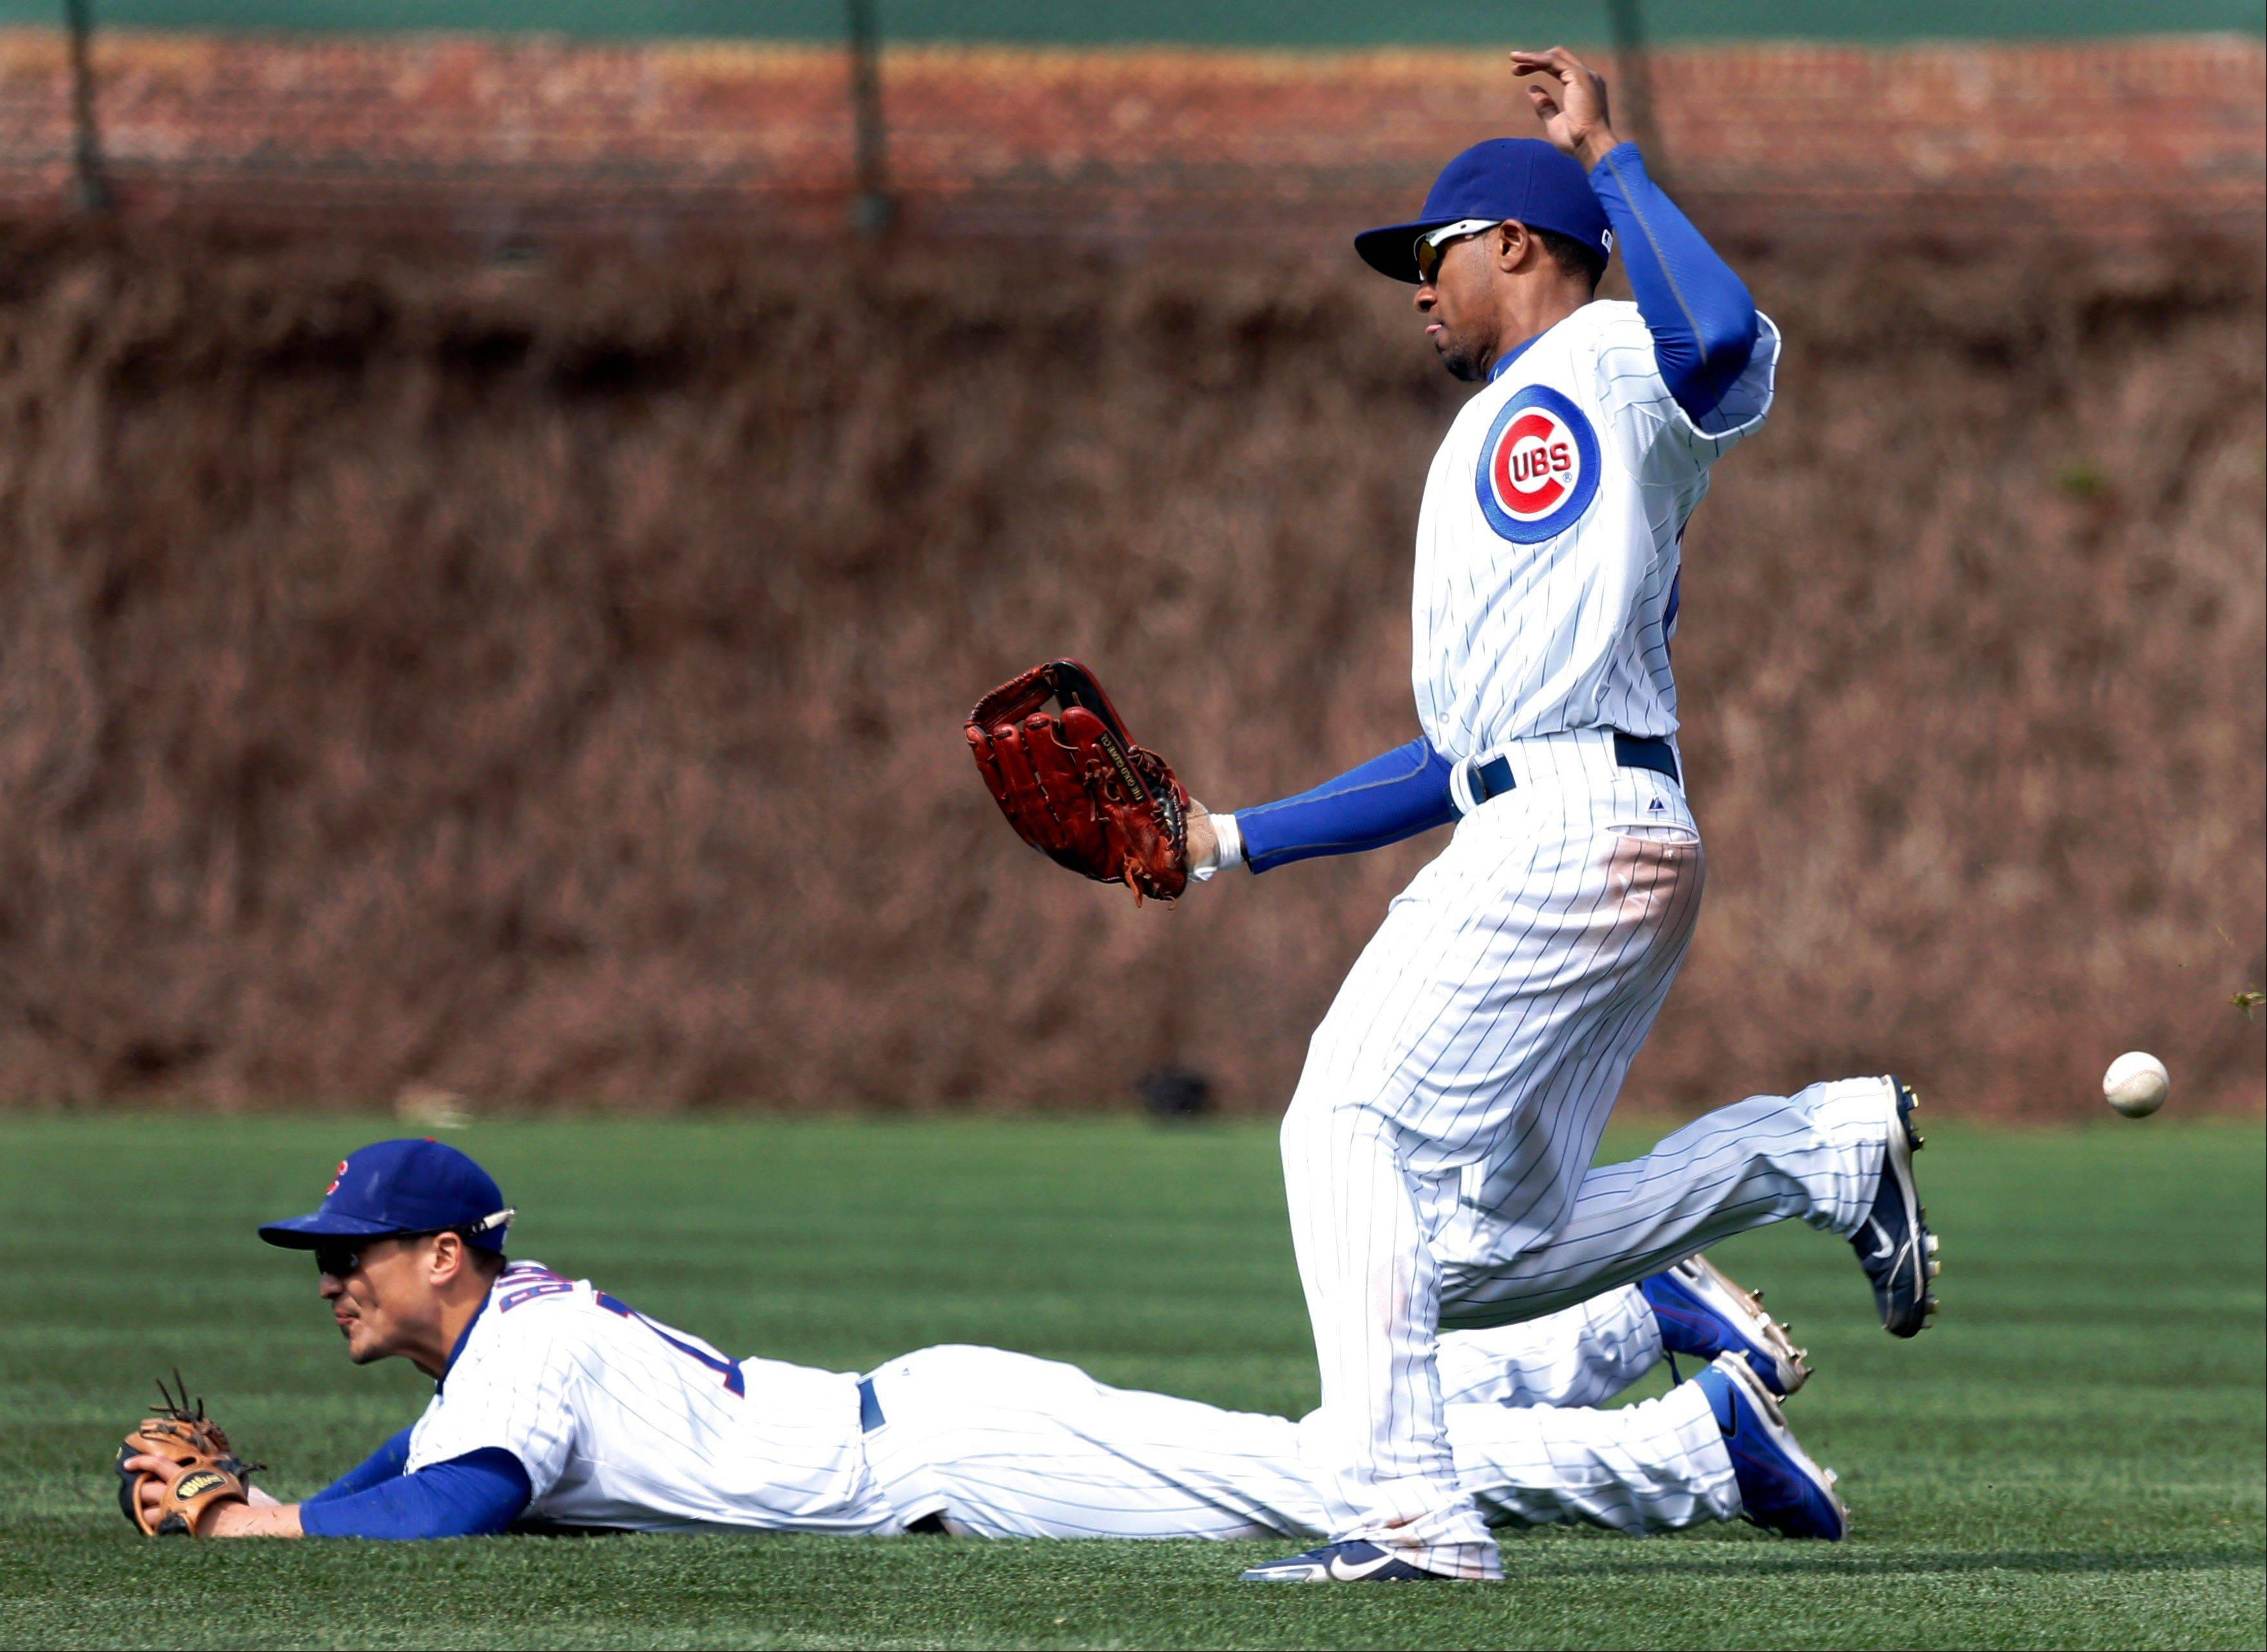 Cubs right fielder Julio Borbon, right, fails to catch a shallow pop fly off the bat of San Diego Padres� Yonder Alonso in the eighth inning as second baseman Darwin Barney falls to the turf Thursday at Wrigley. The Cubs lost 4-2.